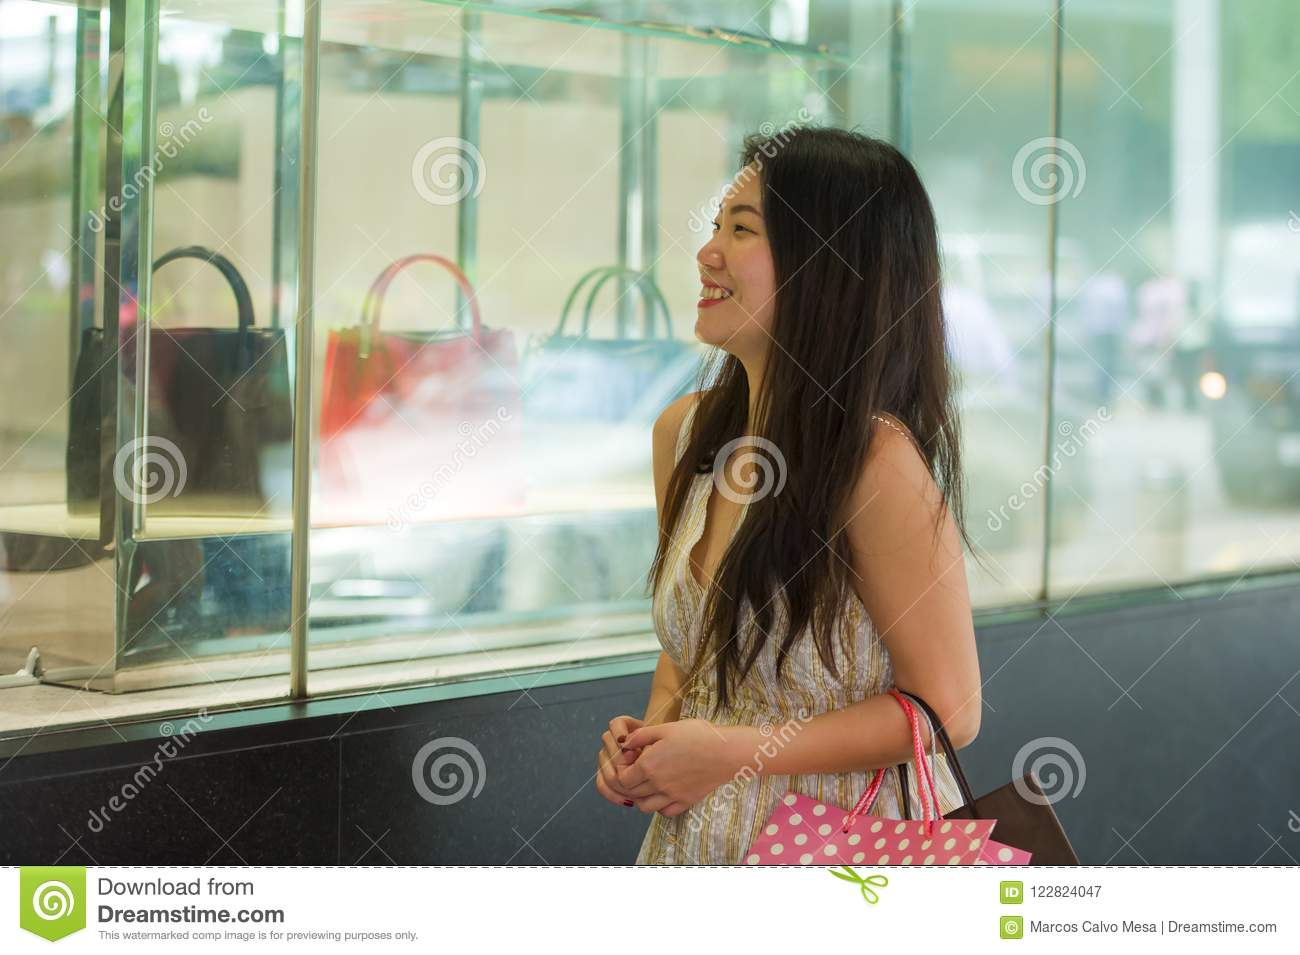 a8be95a225c Young beautiful and elegant happy Asian Korean woman holding shopping bags  after buying walking on street looking at clothing window store smiling  cheerful ...